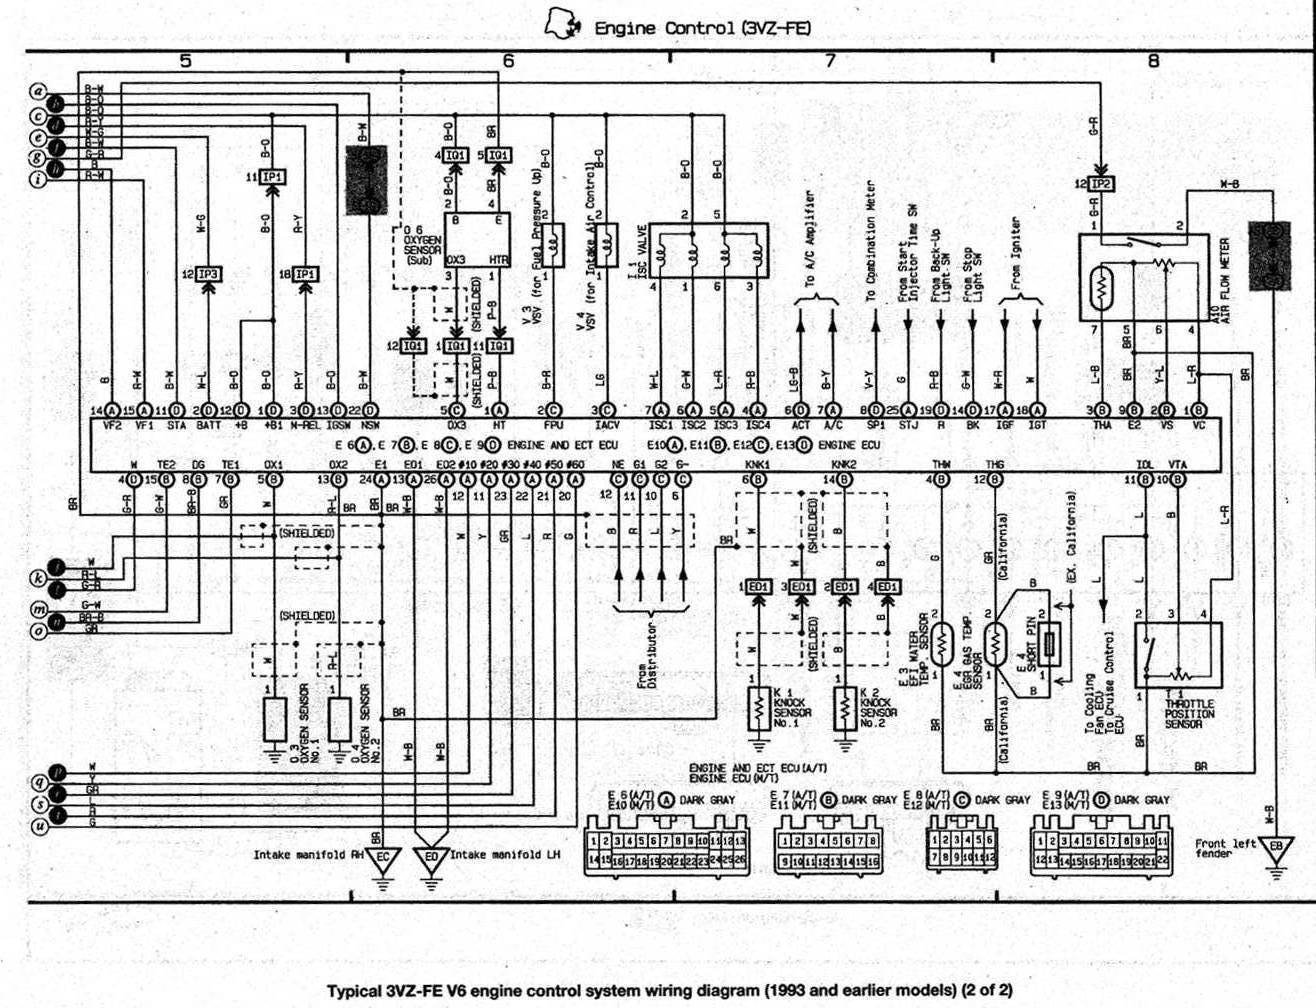 1zz Fe Ecu Wiring Diagram Pdf: Awesome 3sgte Wiring Diagram Photos - Everything You Need to Know rh:ferryboat.us,Design